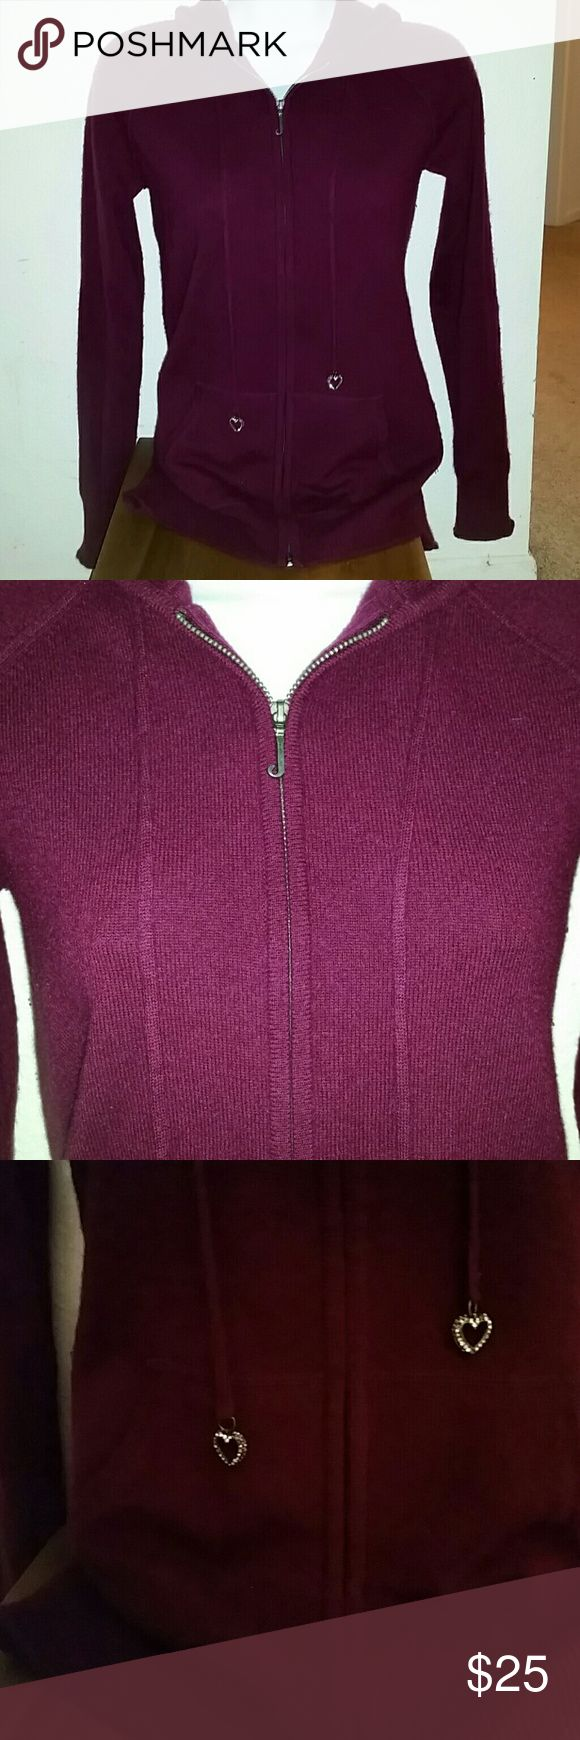 100% cashmere Juicy Couture burgundy purple zip up A great 100%; cashmere zip-up hoodie jacket by Juicy Couture in pretty purple to burgundy color. Size is petite and fits smalls. I usually can wear a small to medium and this has a little bit of stretch to it. Soft and comfy. Worn a few times but in excellent condition. A couple of stones missing off the heart charms but everything else is like new. Juicy Couture Tops Sweatshirts & Hoodies